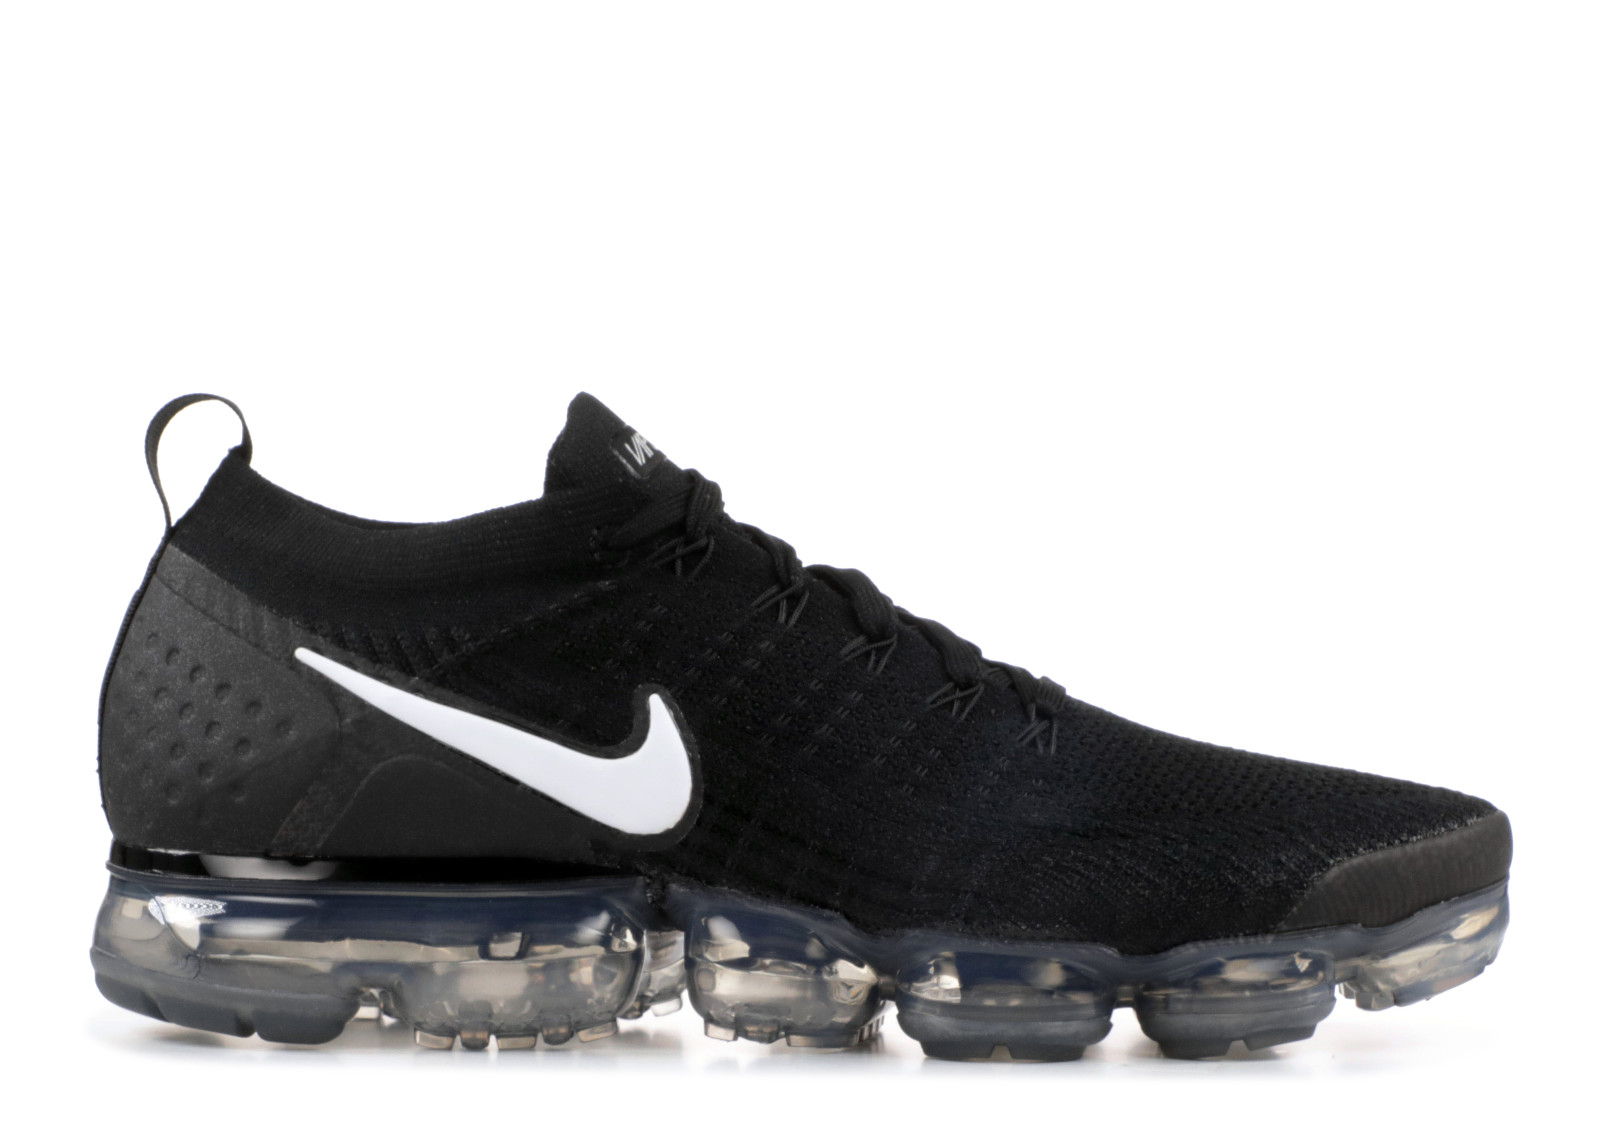 promo code fff75 cc12c Nike Air Vapormax Flyknit 2 Black-White-Dark Grey